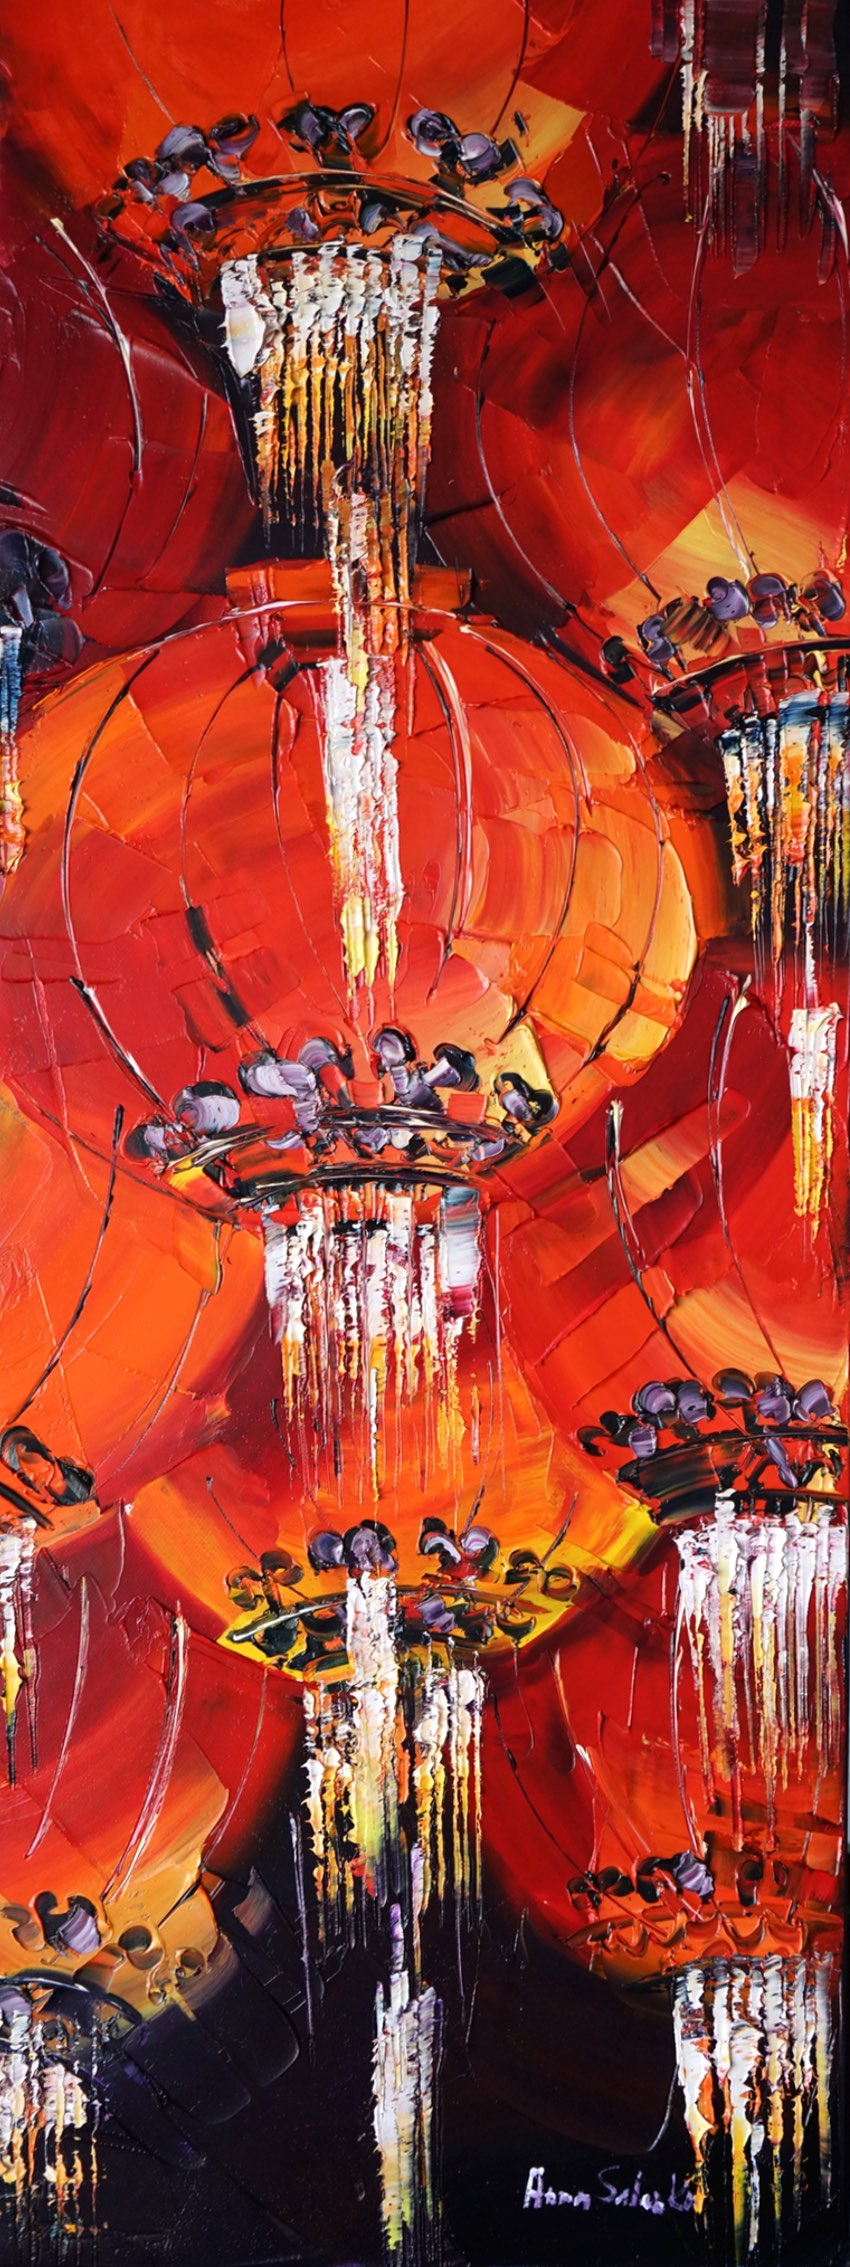 Lanterns - I love painting lanterns. (I hope one day I'll get a chance to have an exhibition devoted entirely to the pictures of lanterns) Lantern is a common holiday decoration in China. I used lots of red and orange colors while painting the picture so that to make them look as close to life as possible.